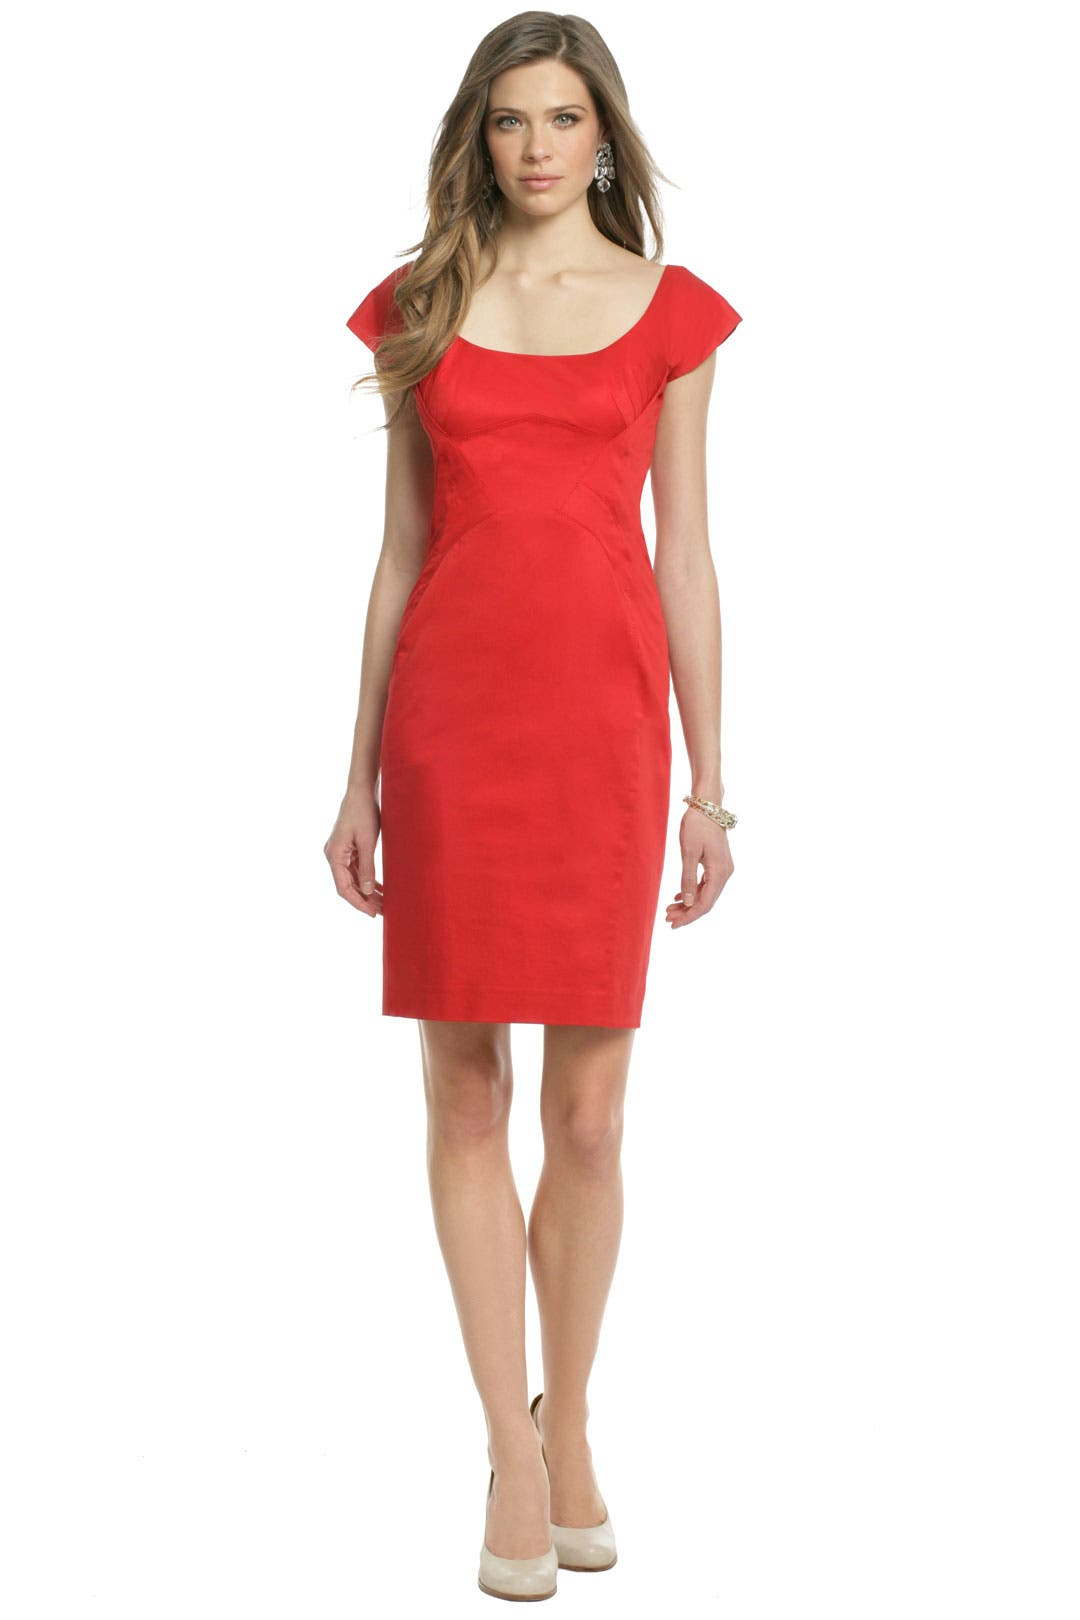 Make It Sizzle Sheath by Z Spoke Zac Posen